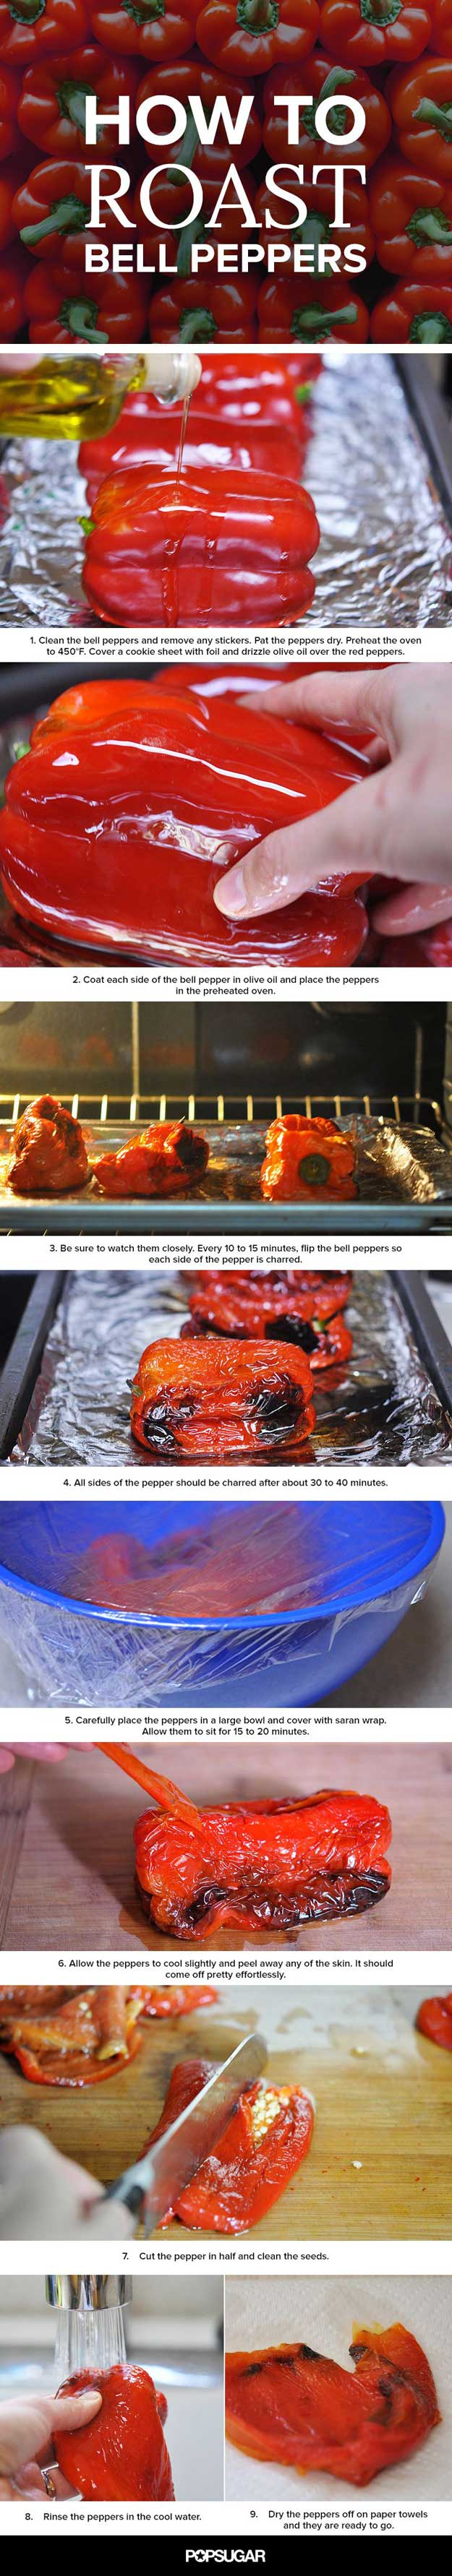 Coolest Cooking Hacks, Tips and Tricks for Easy Meal Prep, Recipe Shortcuts and Quick Ideas for Food |  Make Super Easy Roasted Peppers  | http://cooking-tips-diy-kitchen-hacks